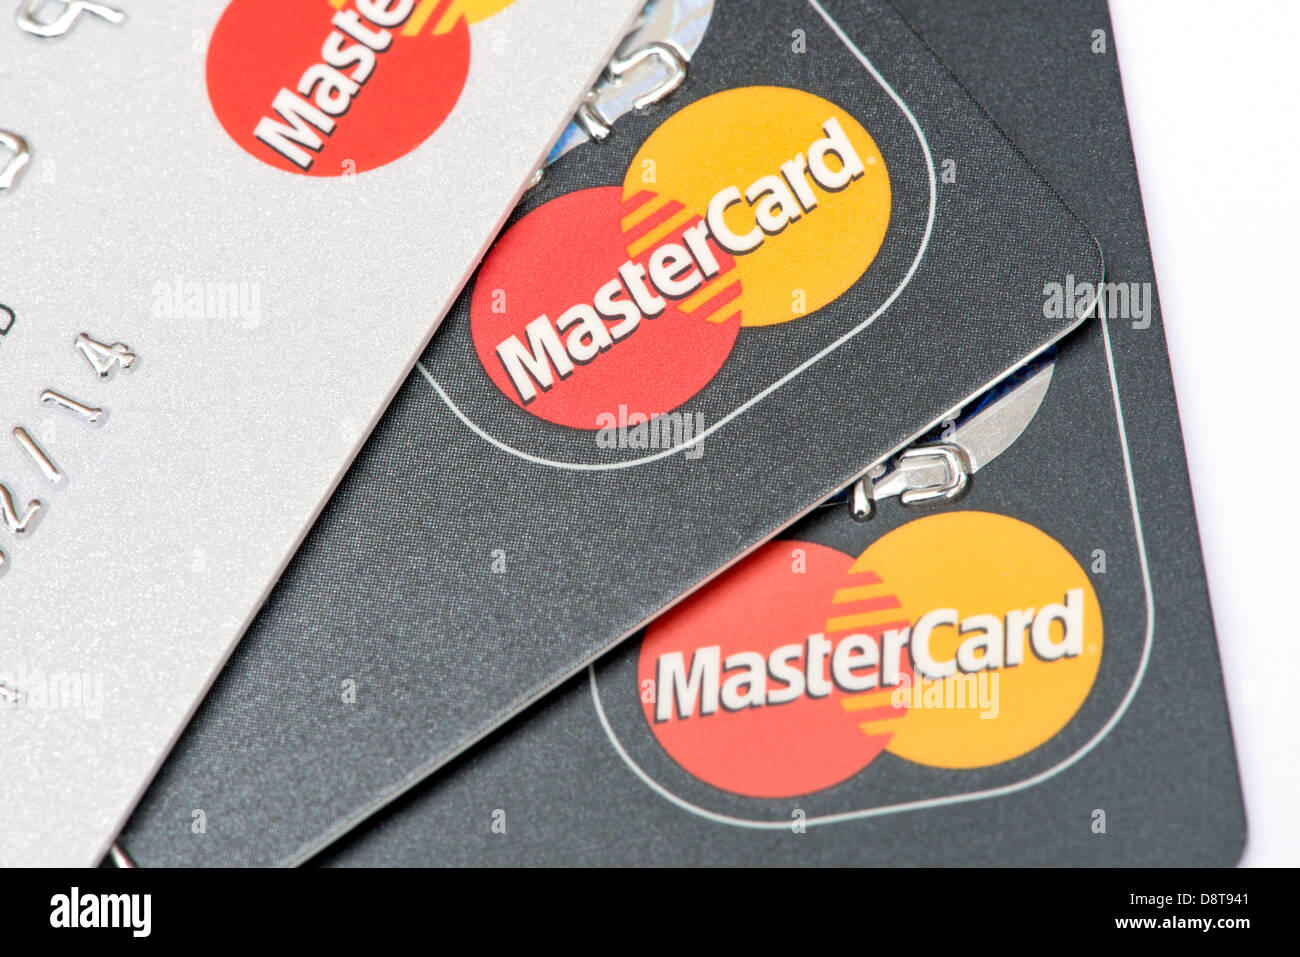 A collection of credit cards - Stock Image